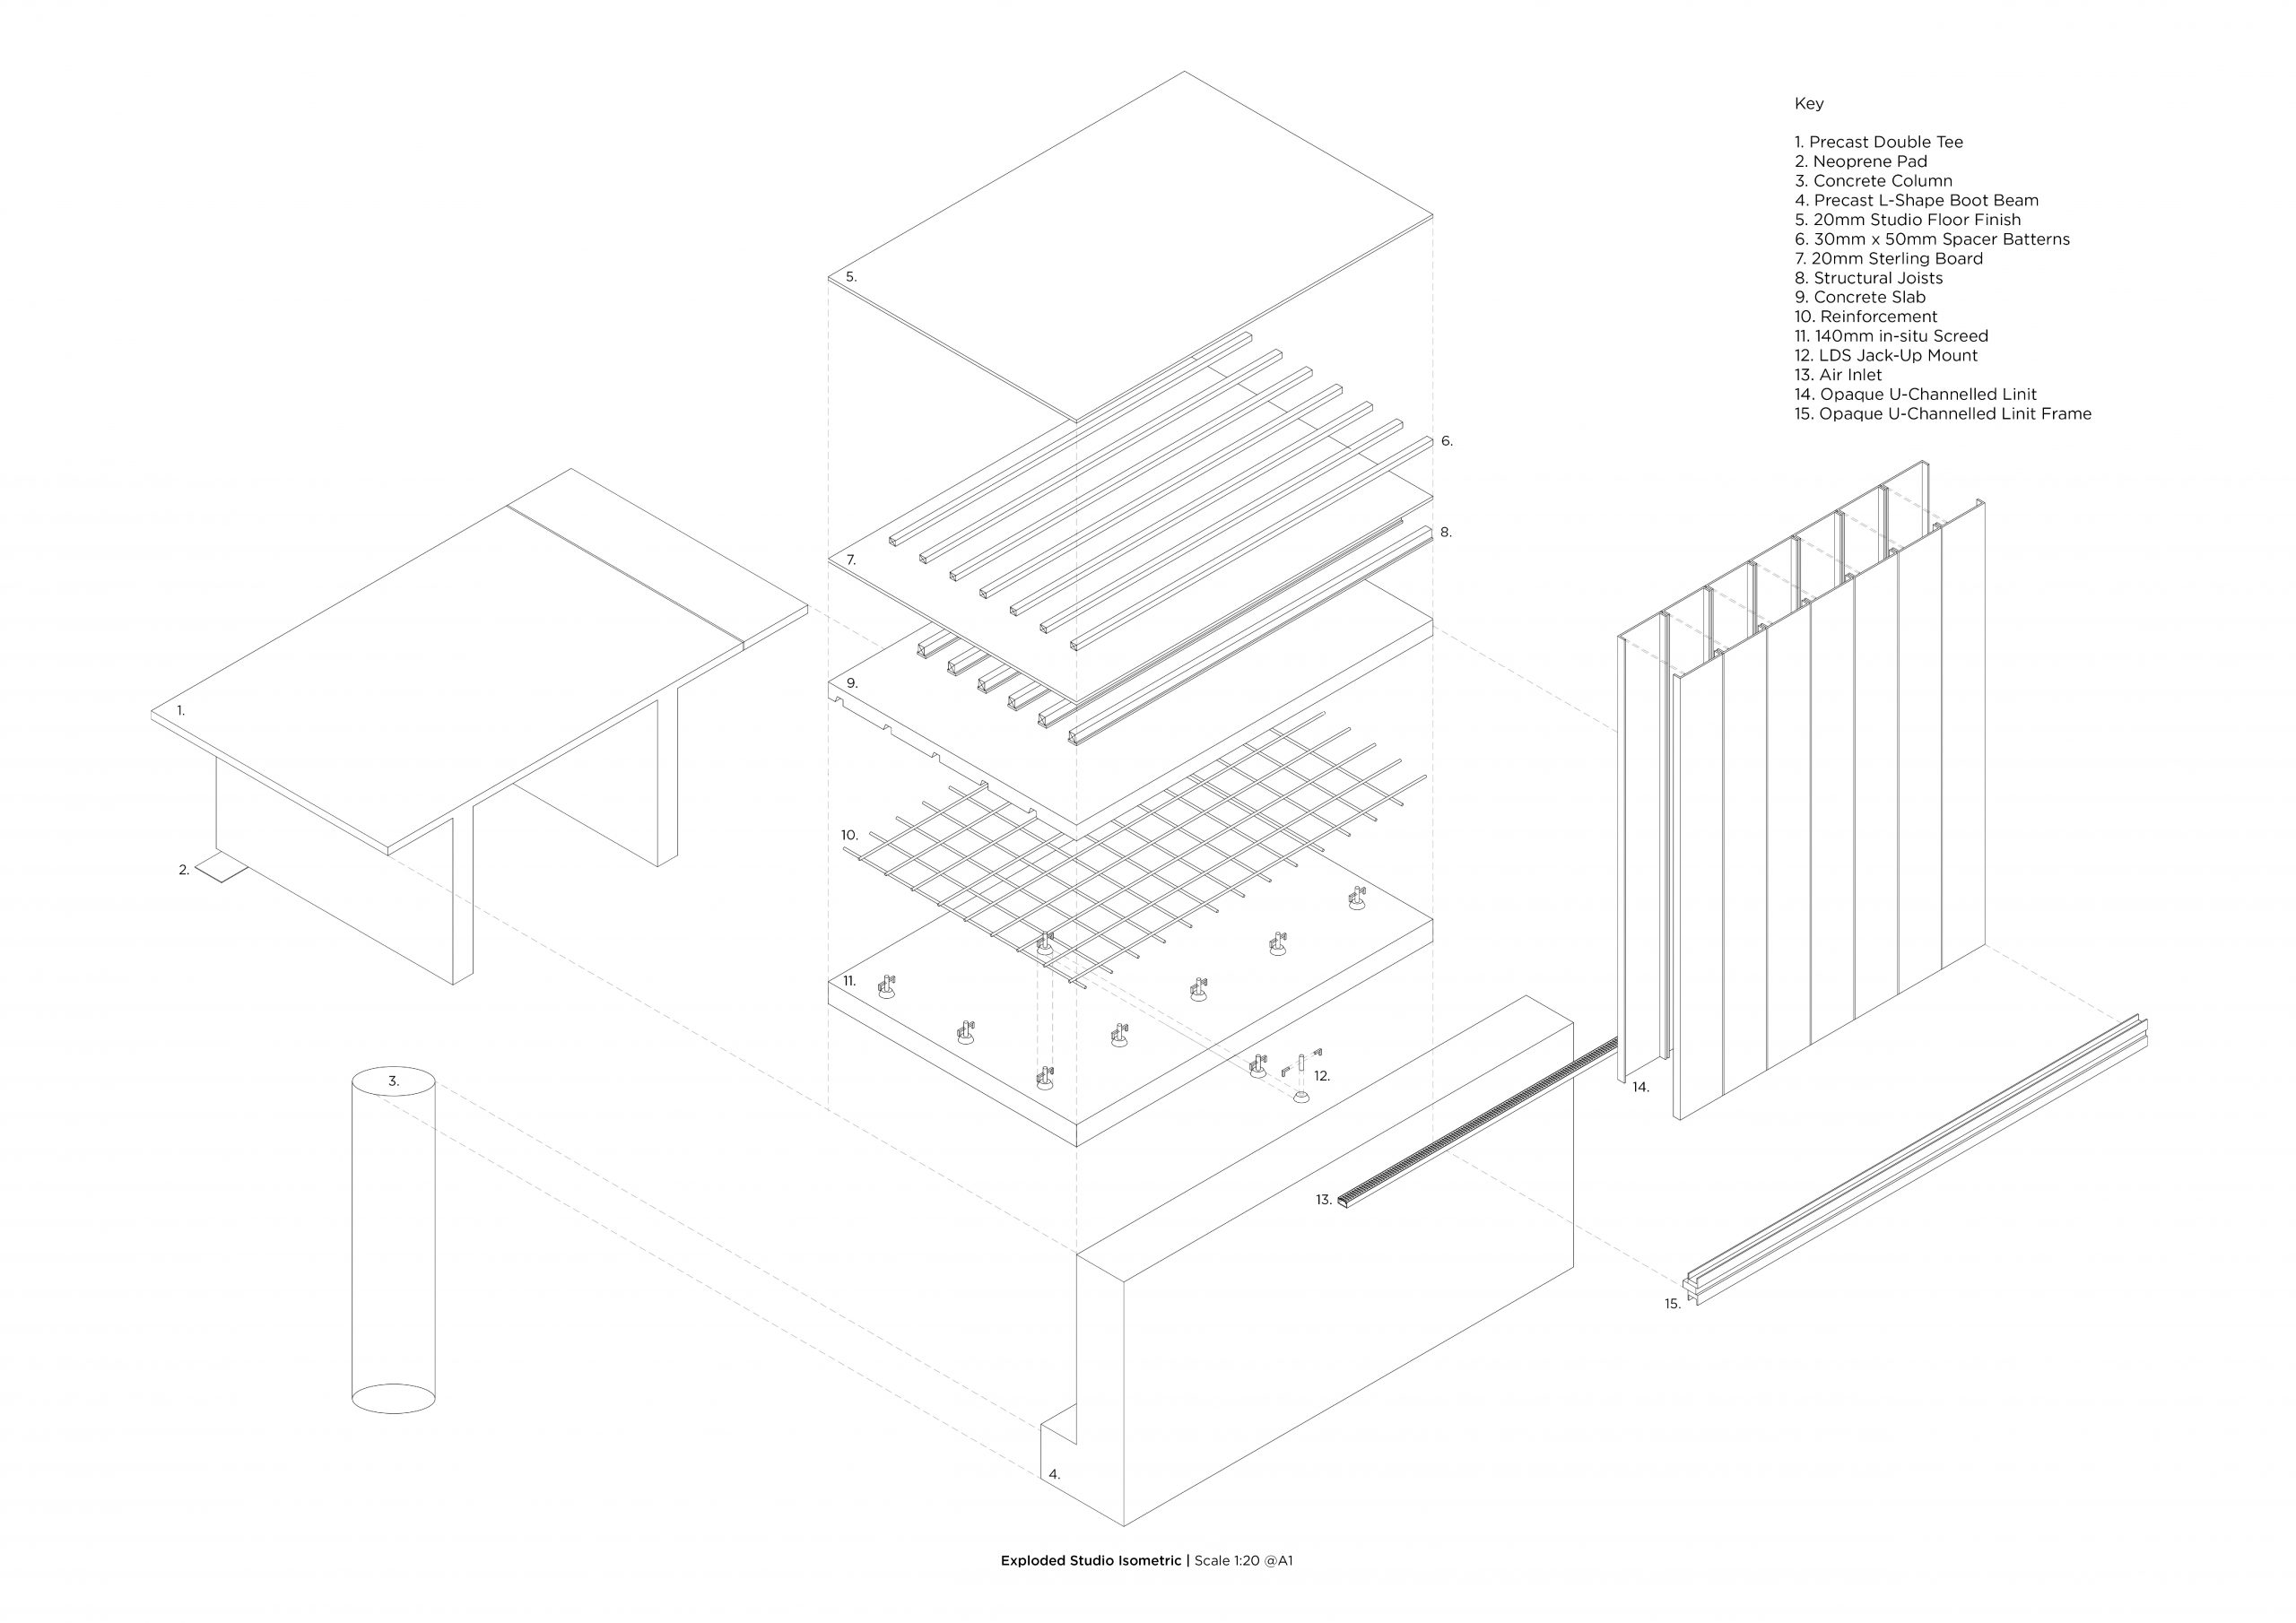 Exploded Studio Isometric   Scale 1:20 @A1 Image